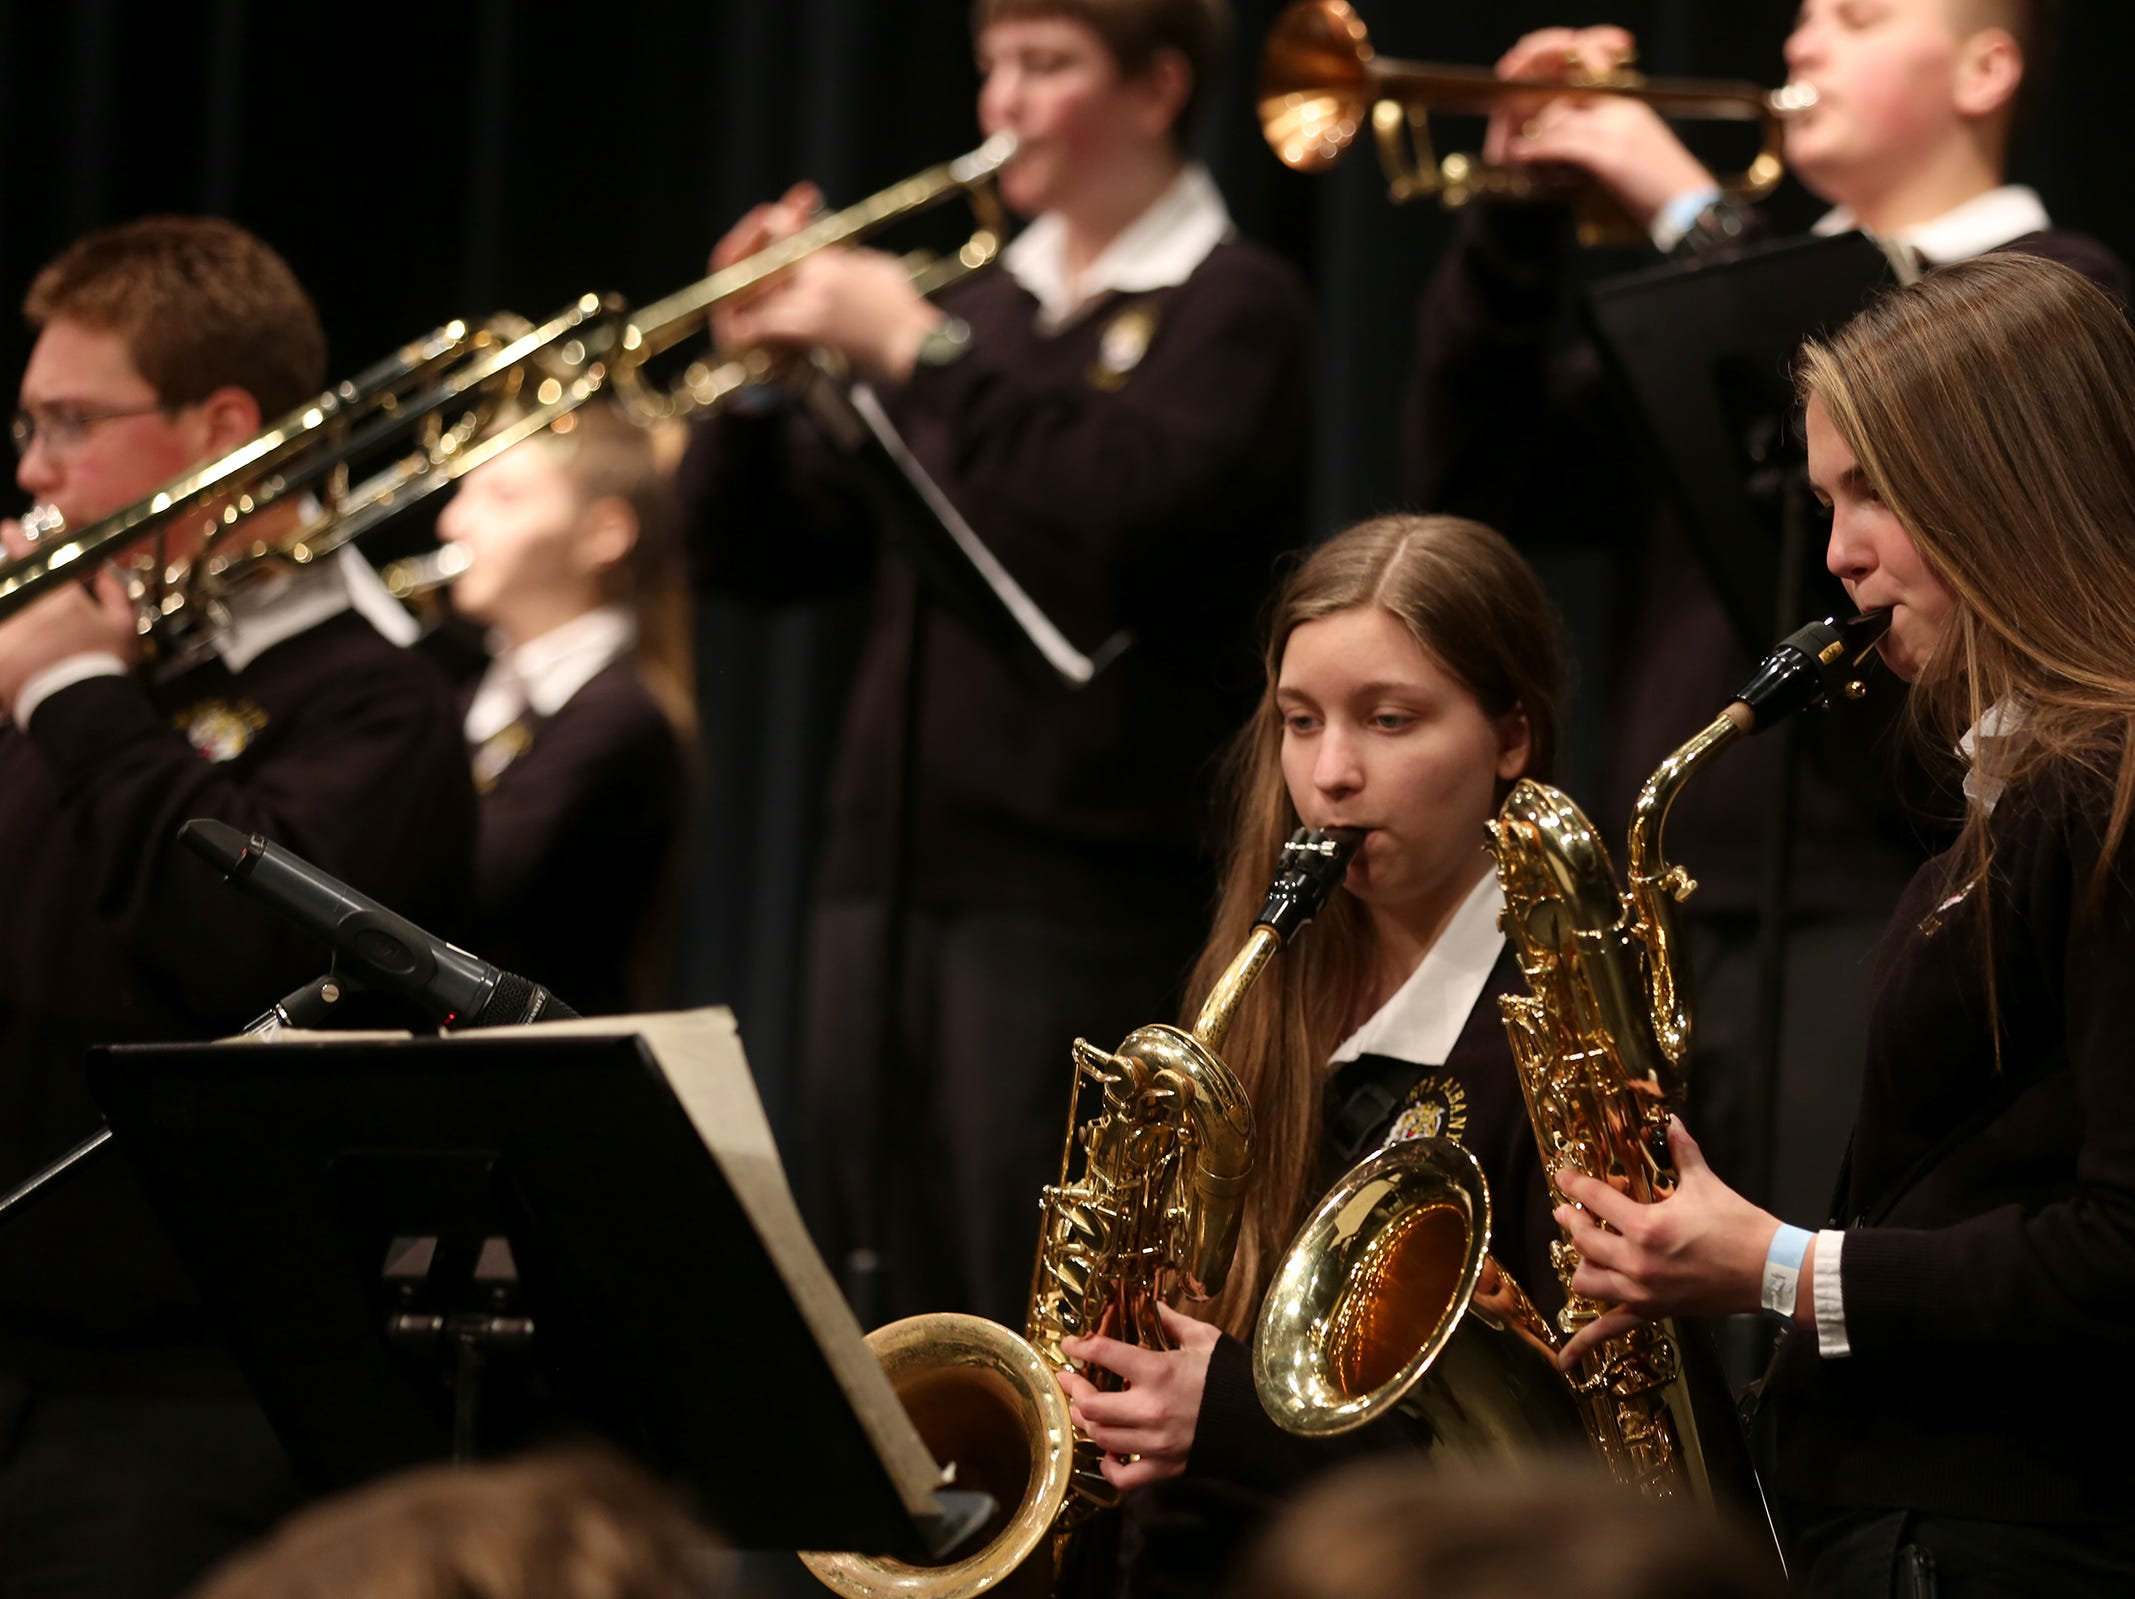 North Albany High School's jazz band performs at the annual West Salem Jazz Festival at West Salem High School on Saturday, Feb. 9, 2019.